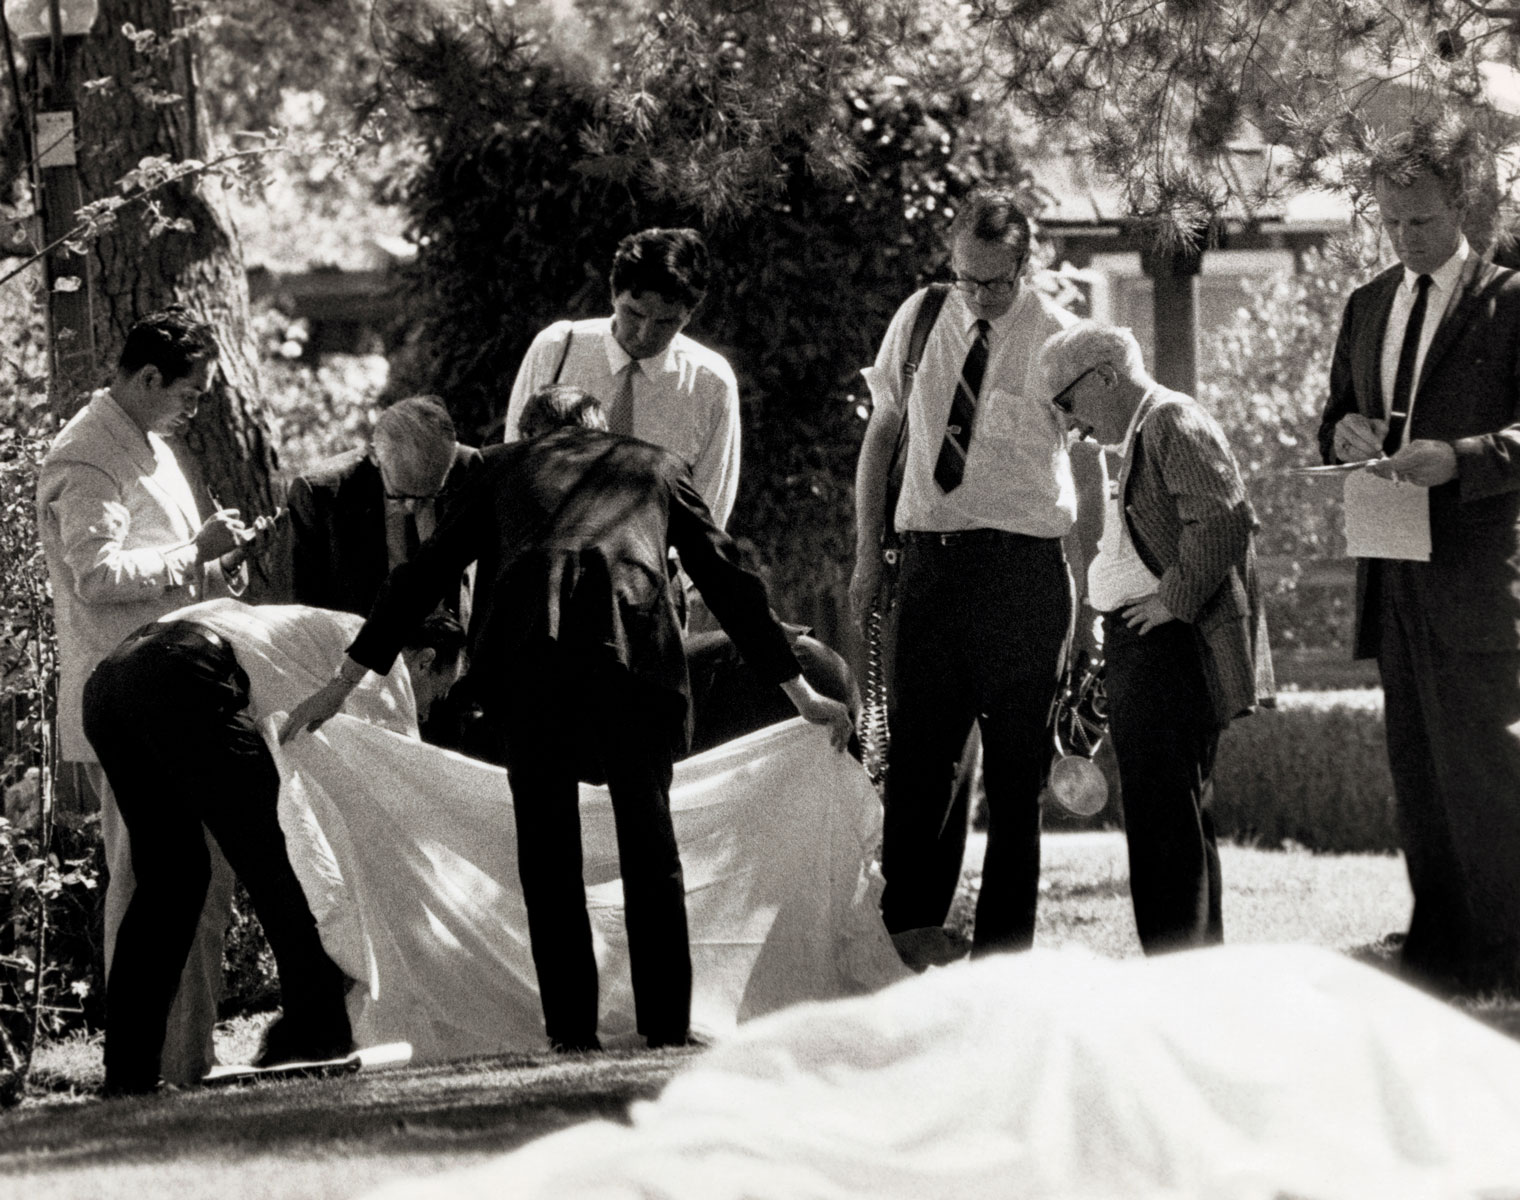 County Coroner Thomas Nogouchi (left) takes notes as assistants hold sheet which covered one body as the other of the two bodies found on the lawn of the Sharon Tate-Roman Polanski home shows in foreground. Five persons were discovered murdered on the property early August 9th, the work of the Manson Family.